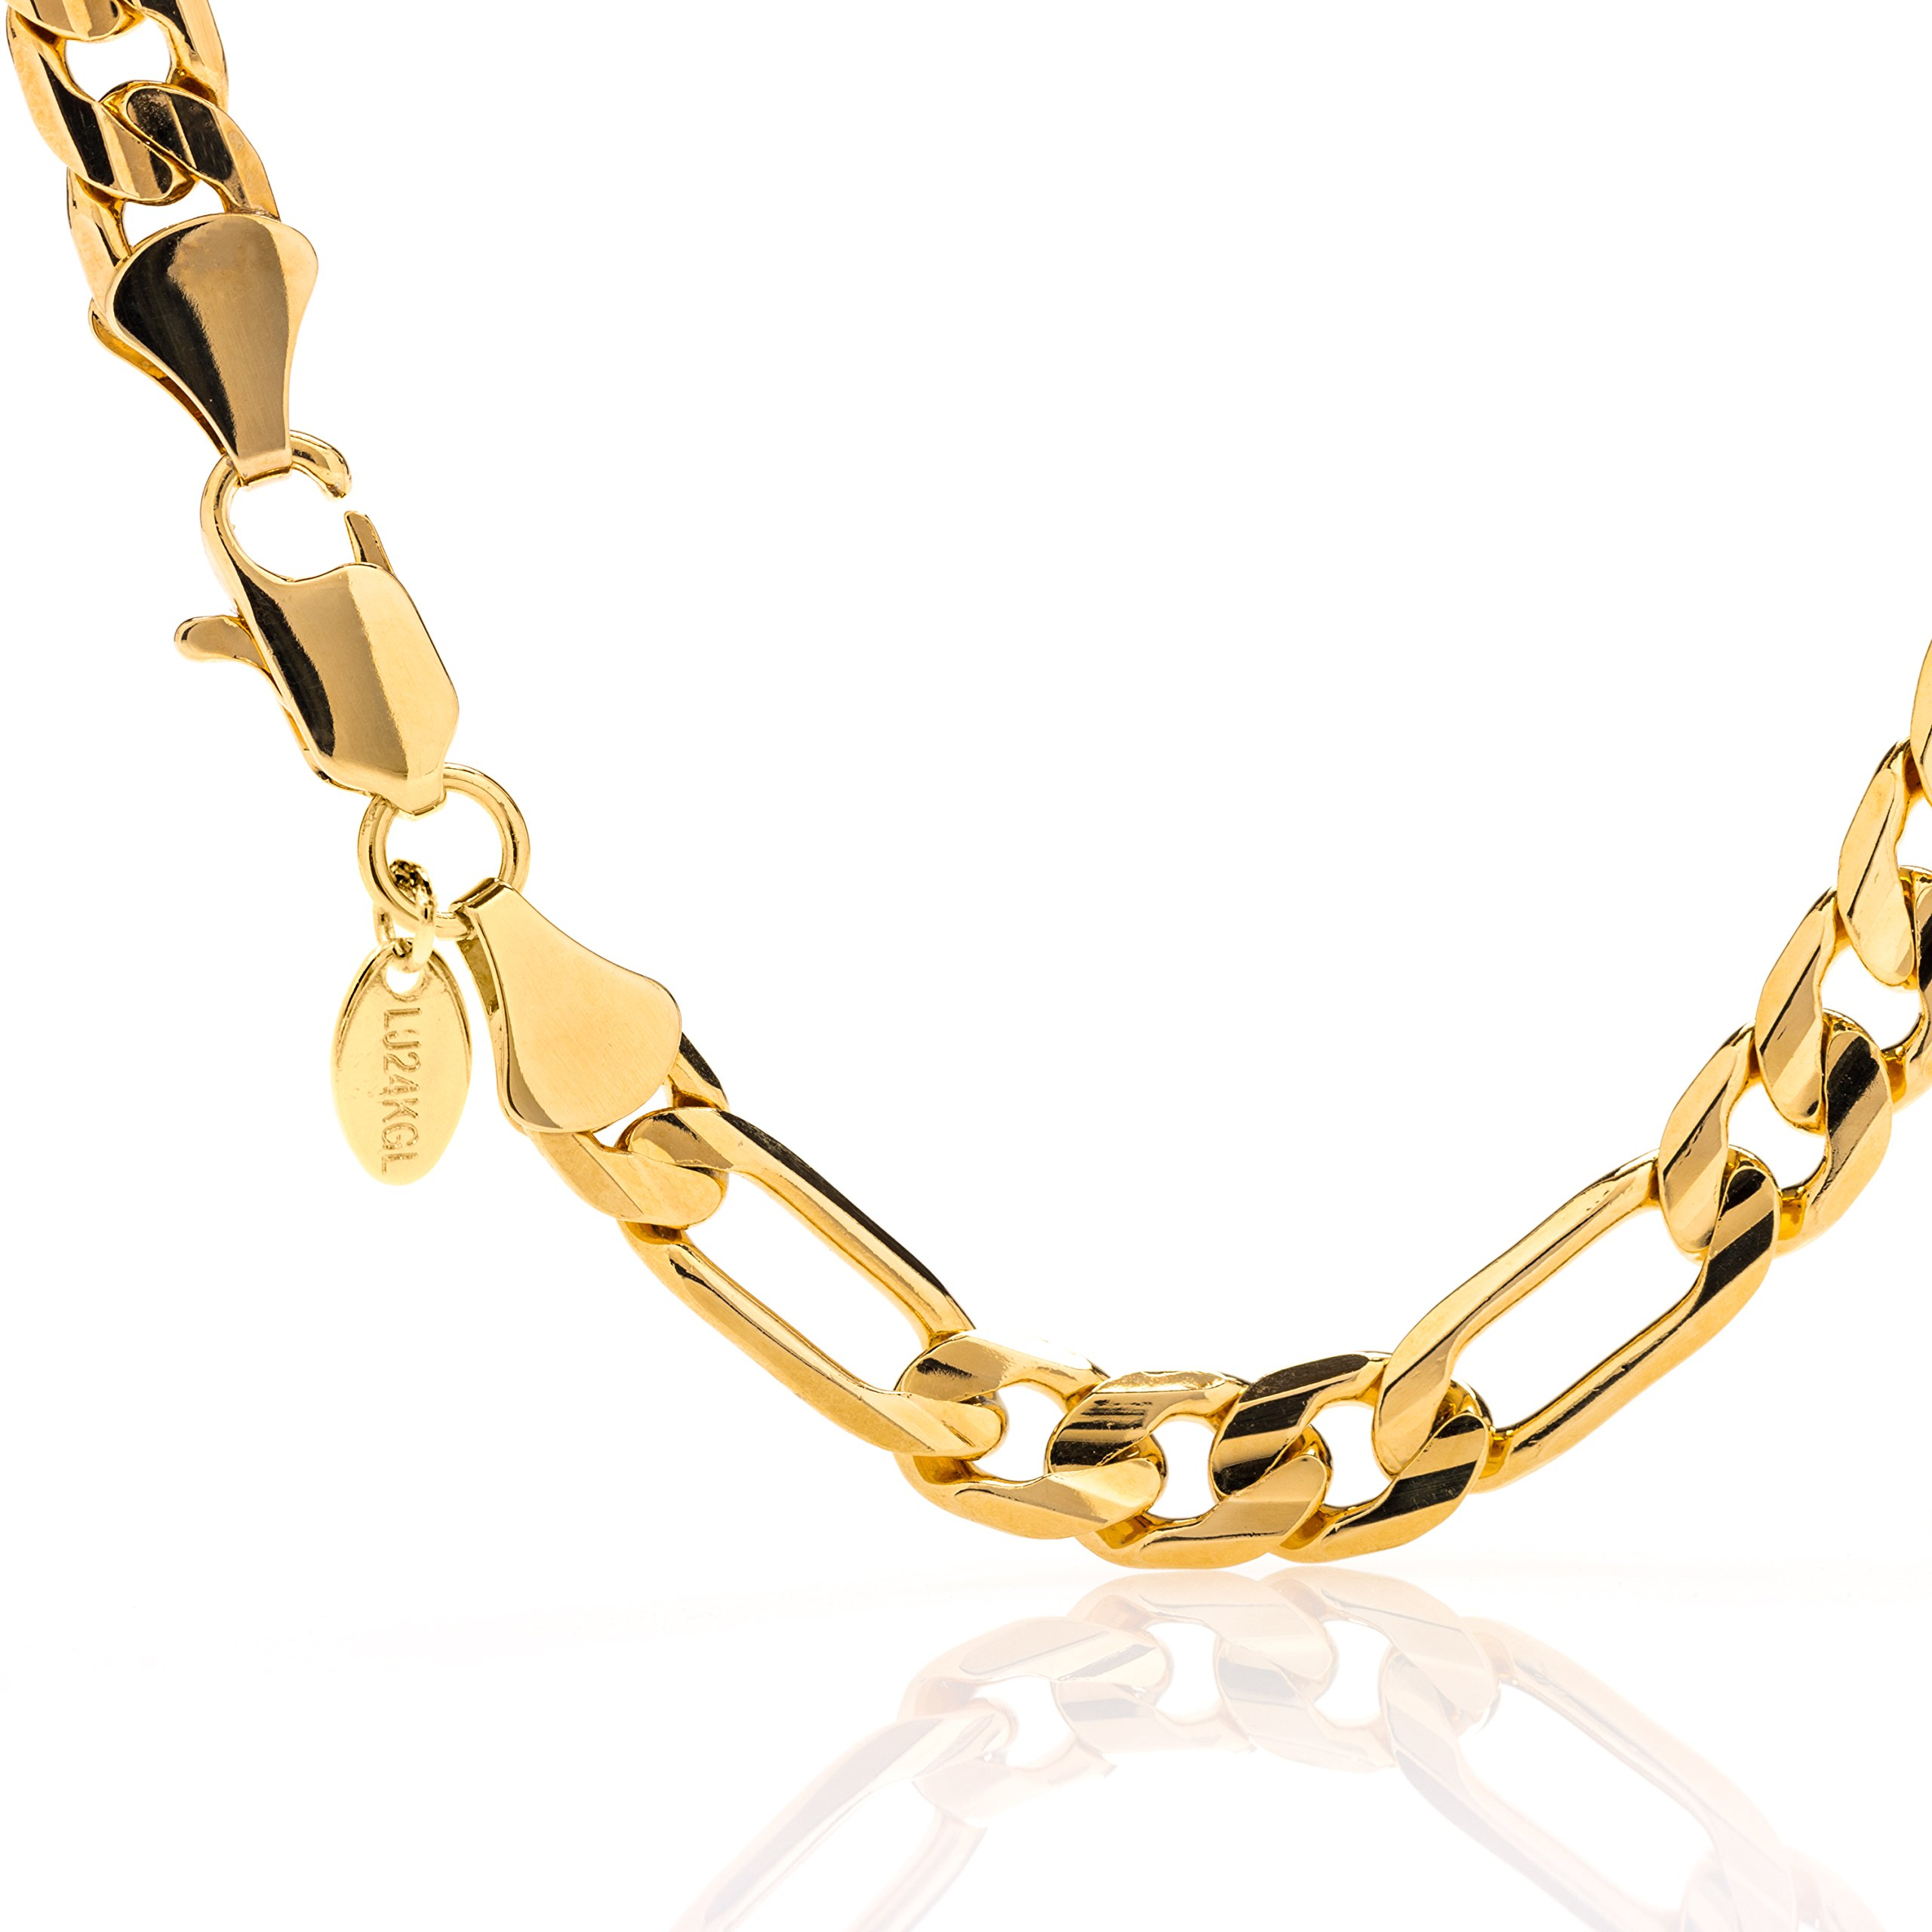 Lifetime Jewelry Gold Bracelets for Men & Women [ 9mm Figaro Chain ] up to 20X More 24k Plating Than Other Gold Chain - Free Lifetime Replacement Guaranteed - Durable Figaro Wrist Bracelet (8.00)